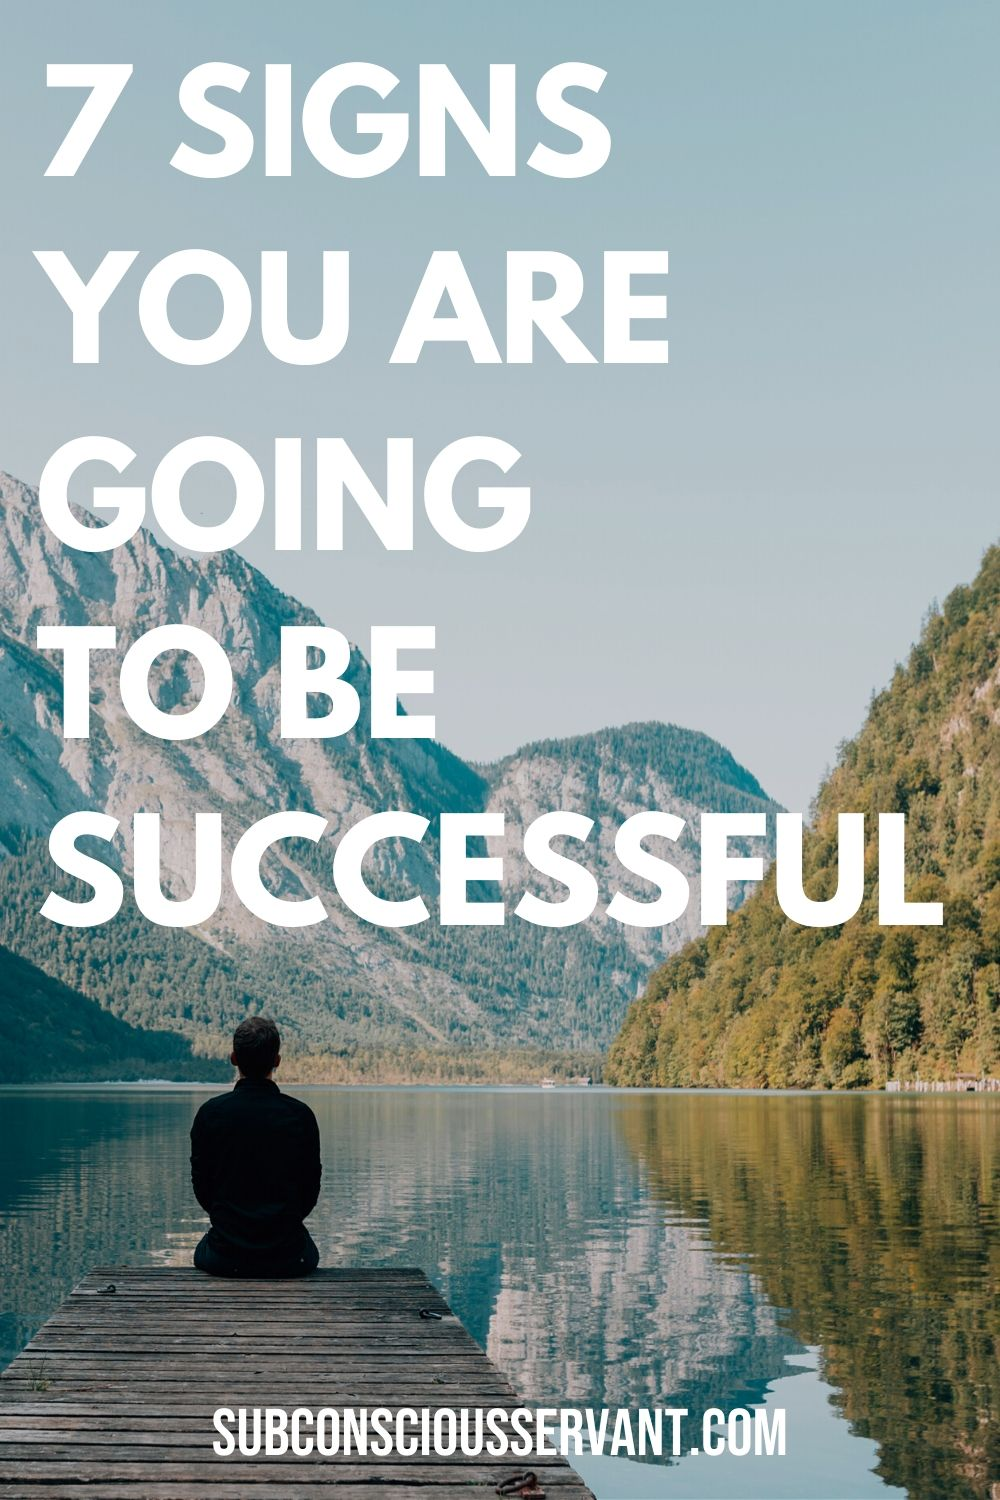 Are you destined for success? Here are 7 signs that can indicate that you are going to be successful. Which trait is your strongest? #Success #Successful #Motivation